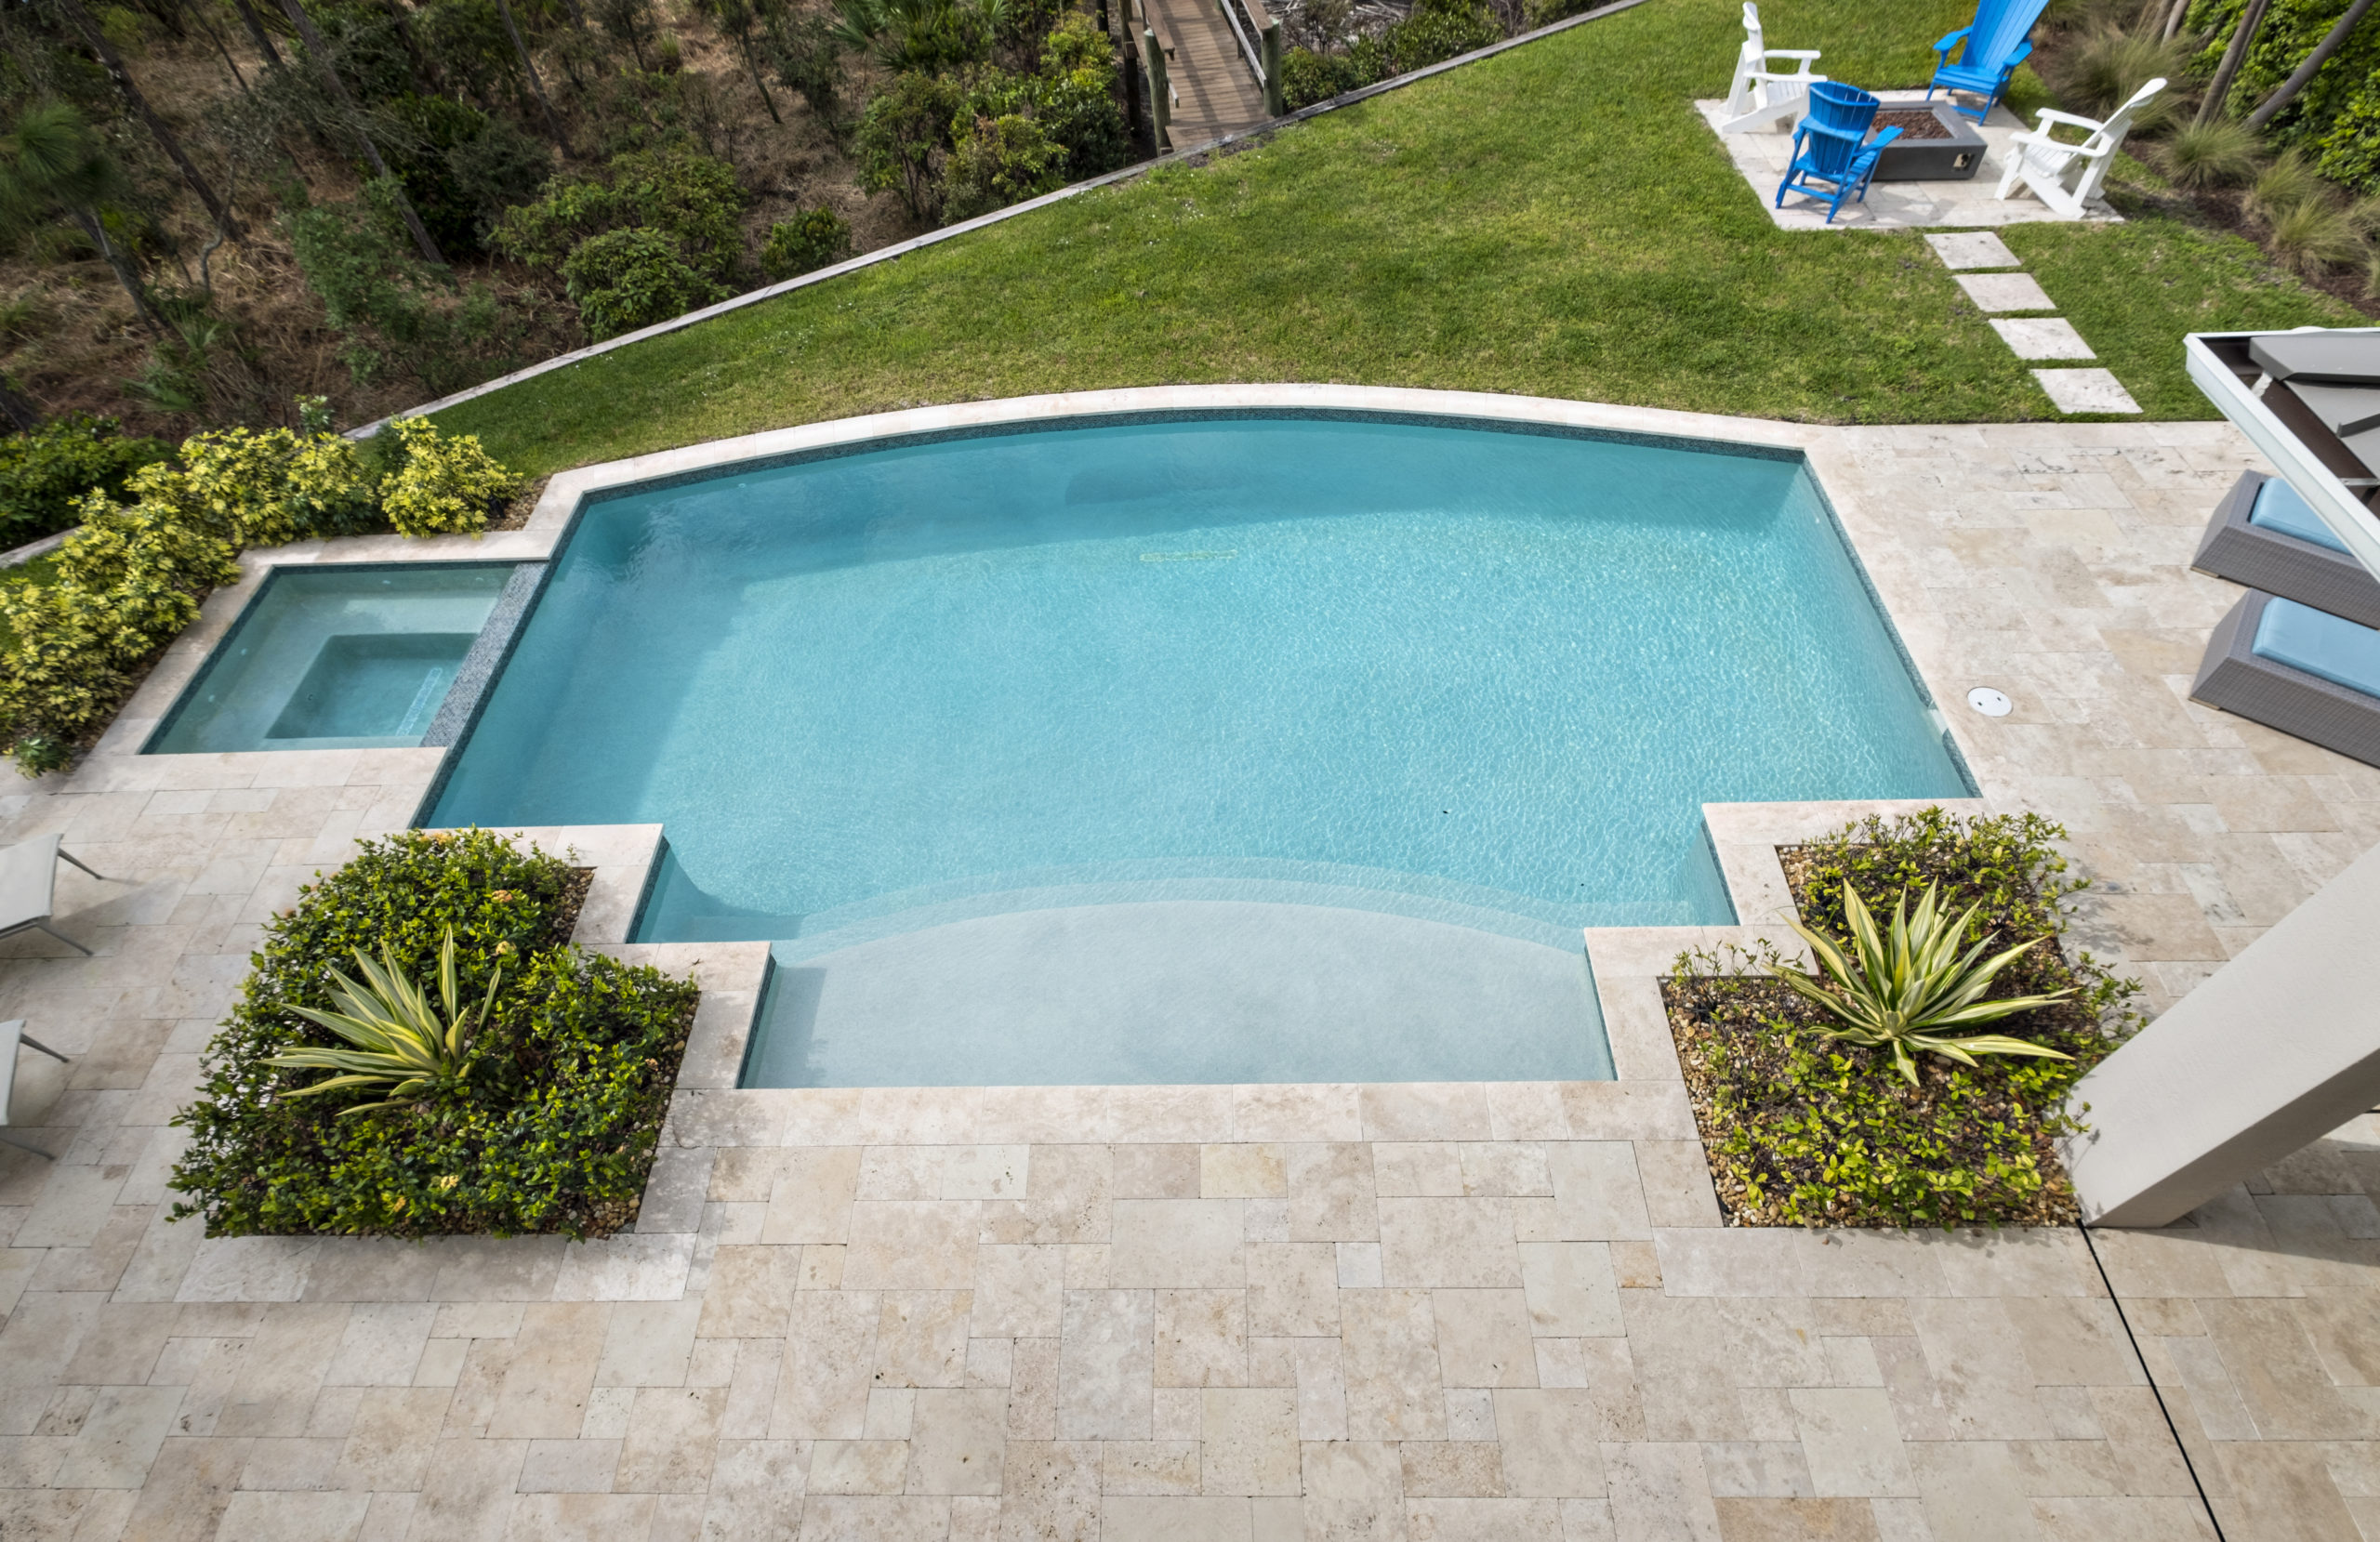 rhr pools of jupiter fl classic shaped pool with spa